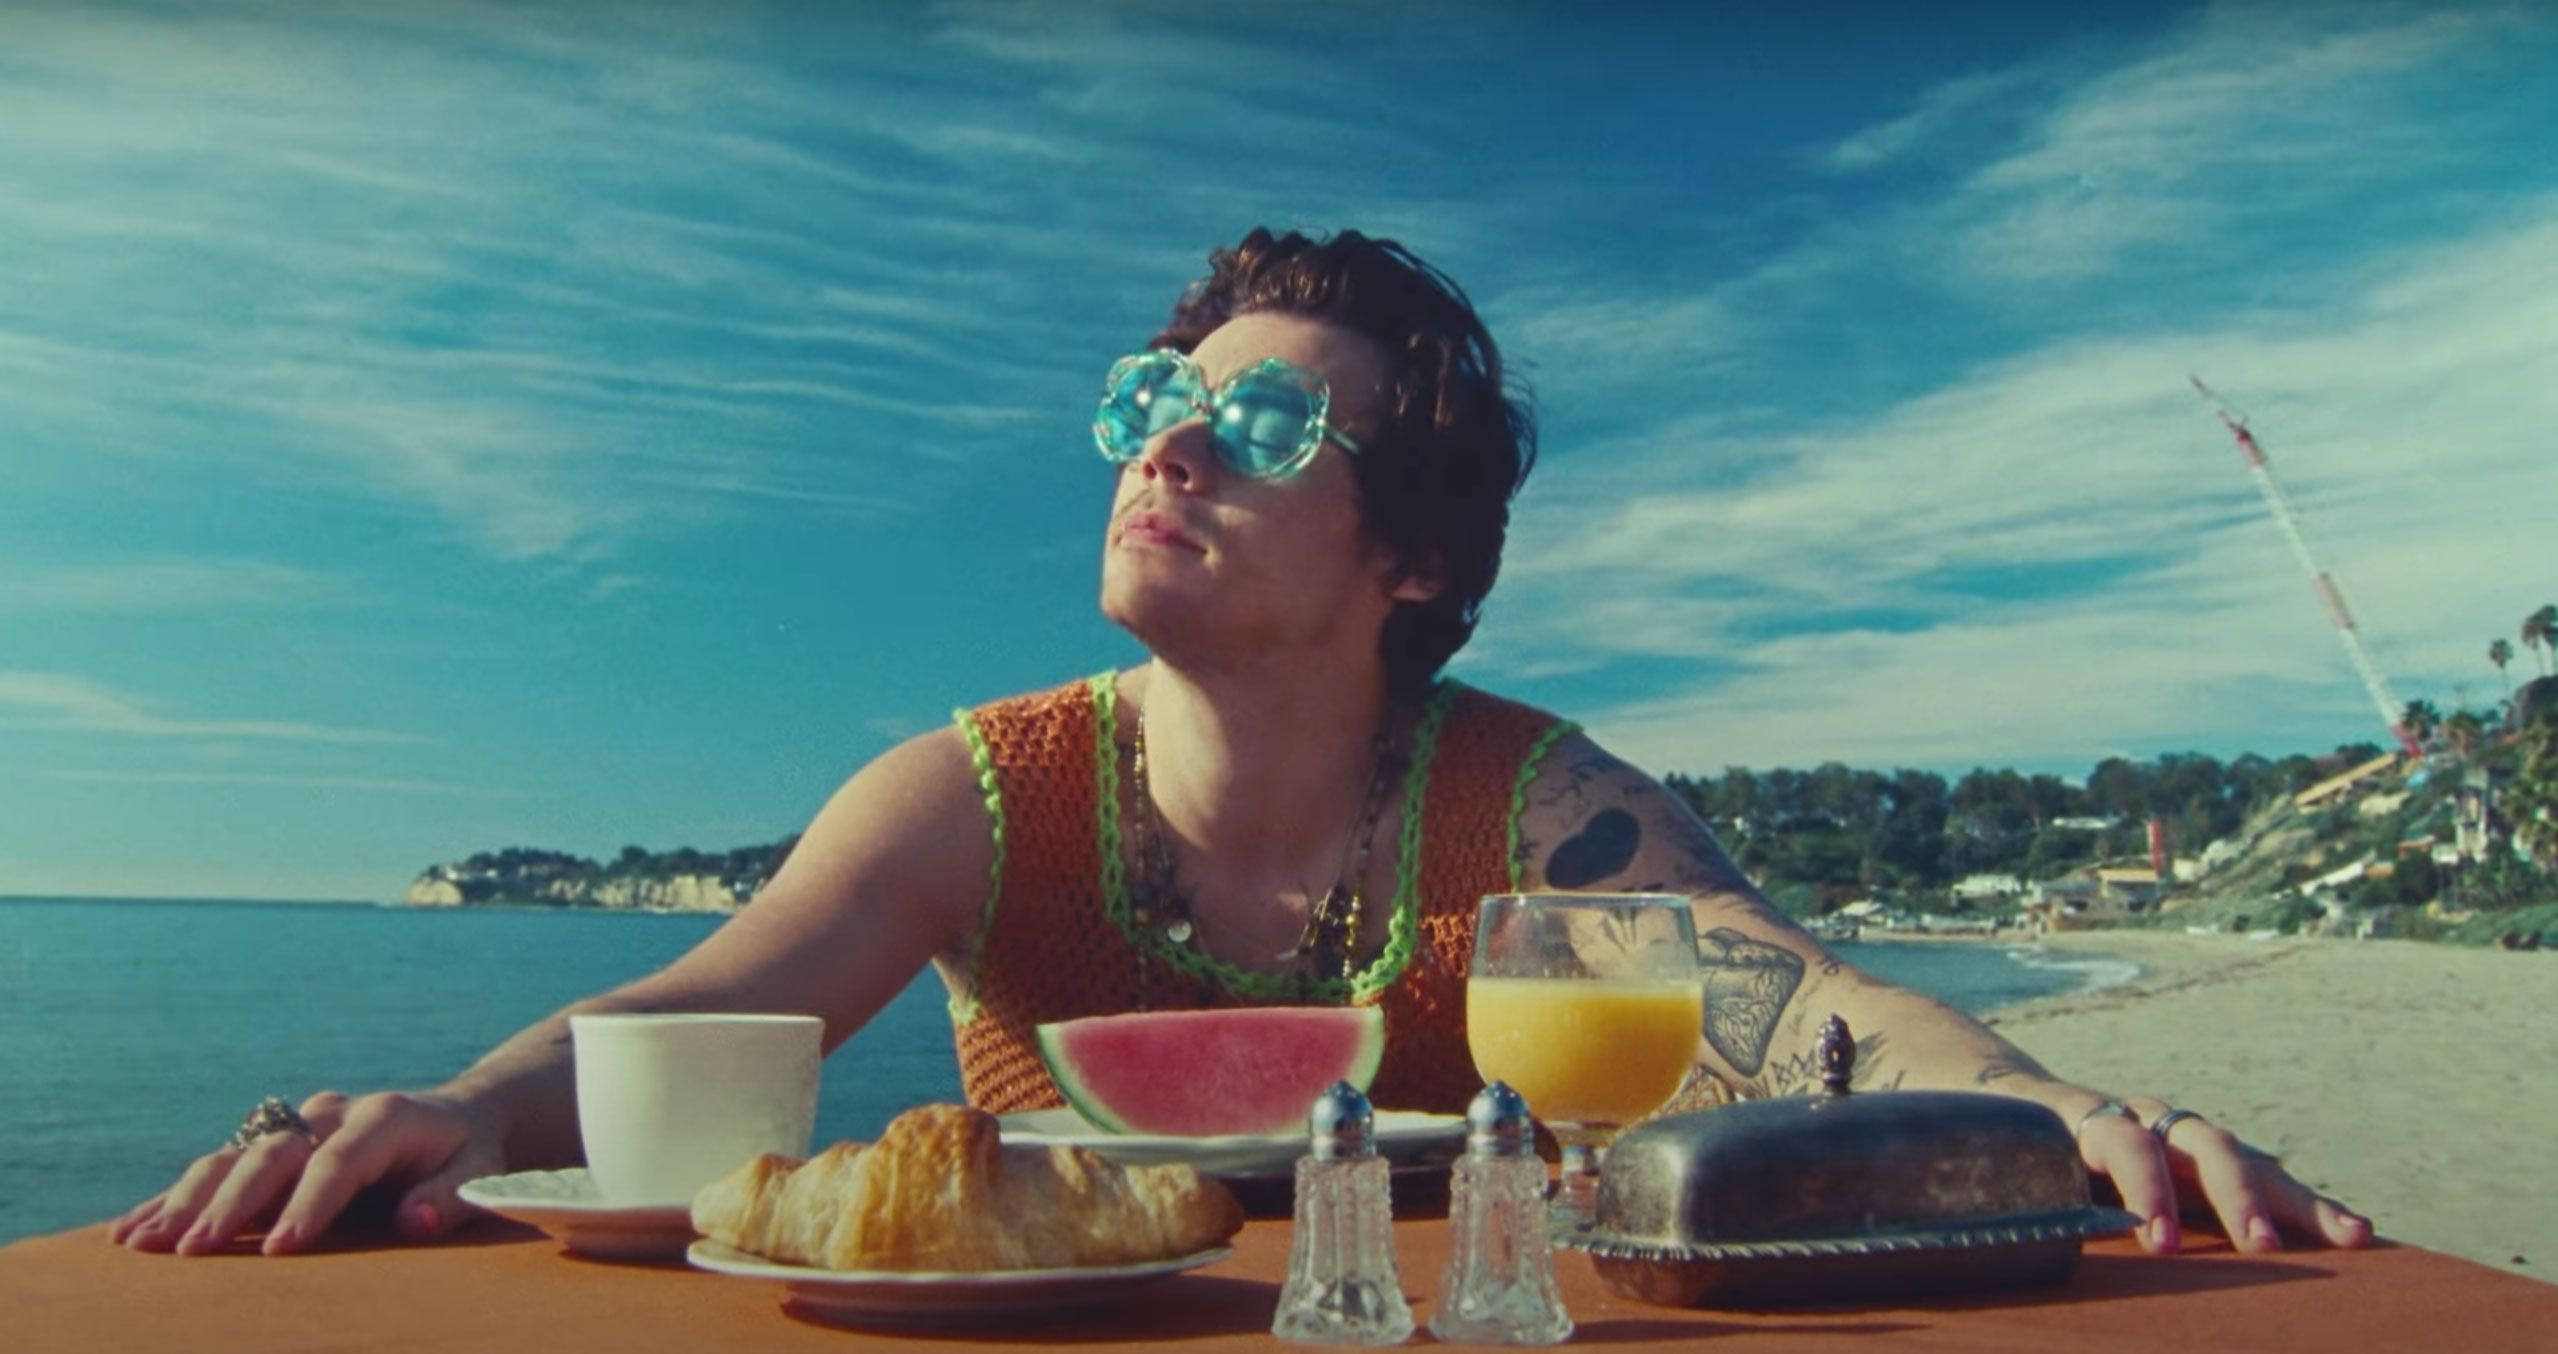 Harry Styles Watermelon Sugar Music Video Fashion And Outfits